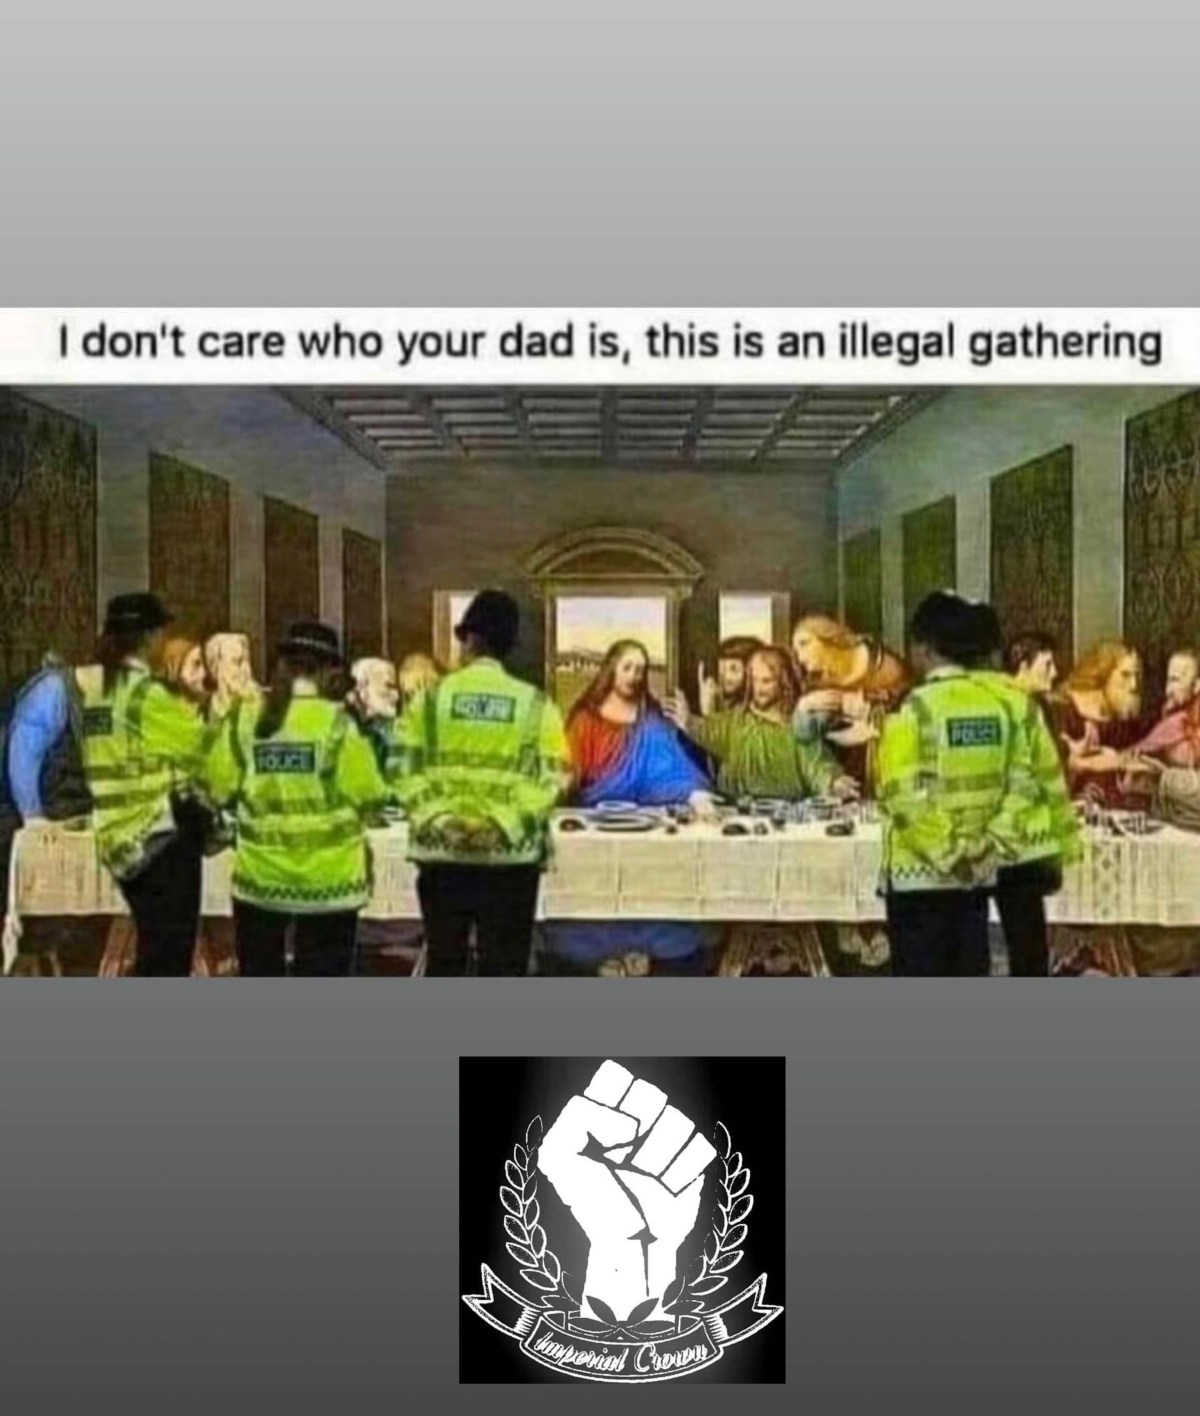 I don't care who your dad is, this is an illegal gathering